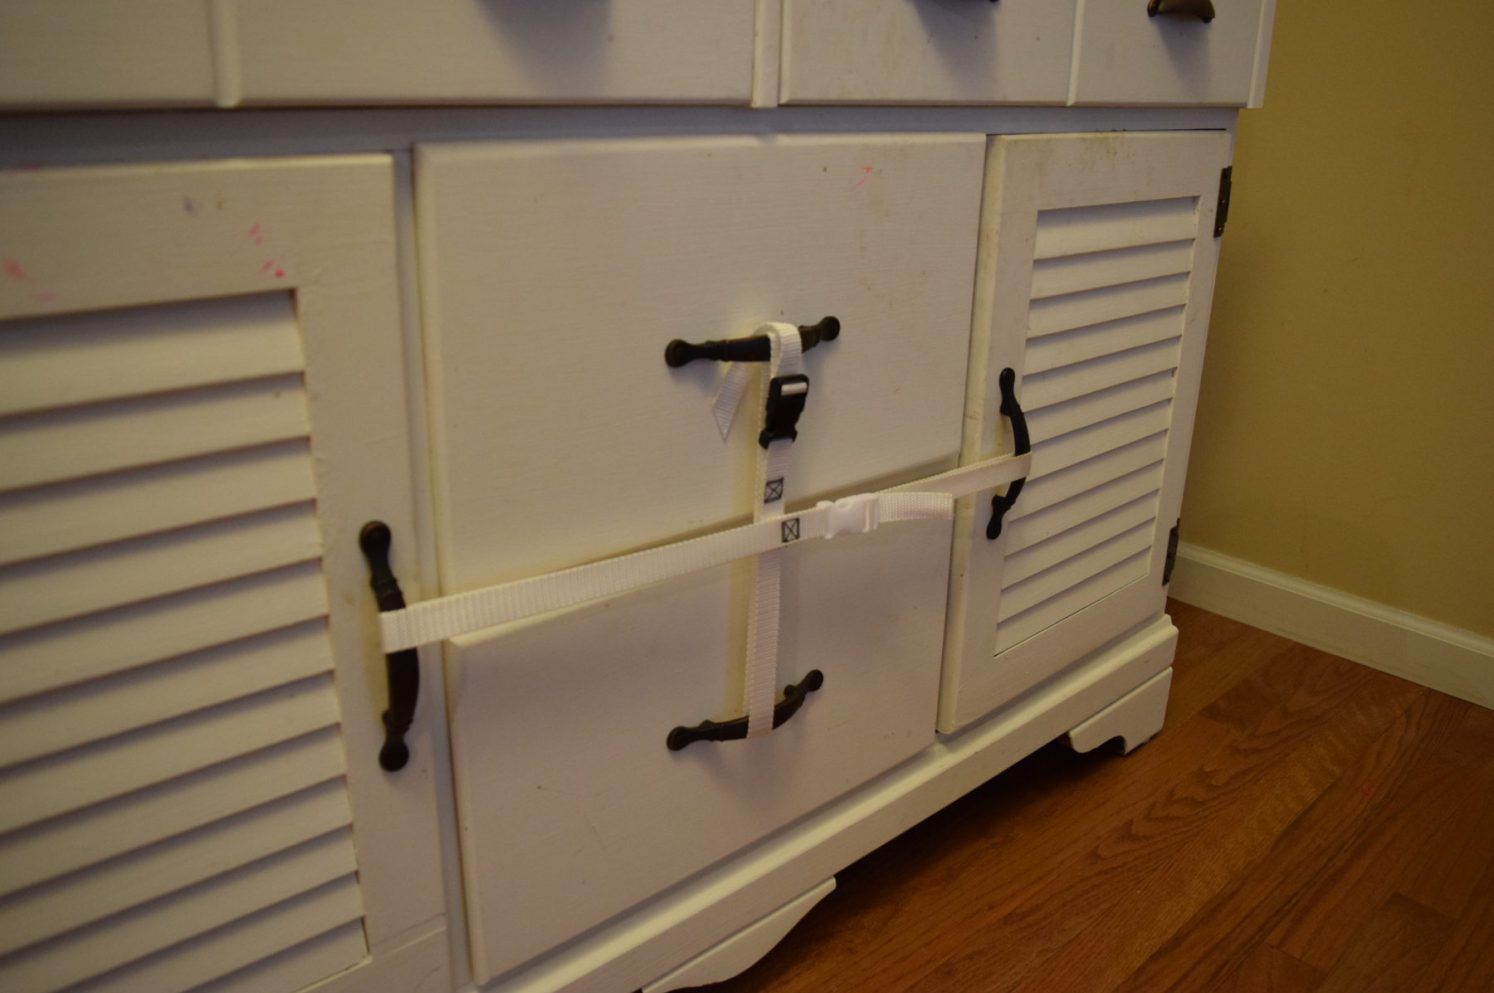 Ordinaire Baby Proof Buffet, Baby Proof Painted Furniture, Baby Proof Difficult  Doors, Childproof Doors, Childproofing, Baby Proofing, Baby Proof Painted  Furniture, ...